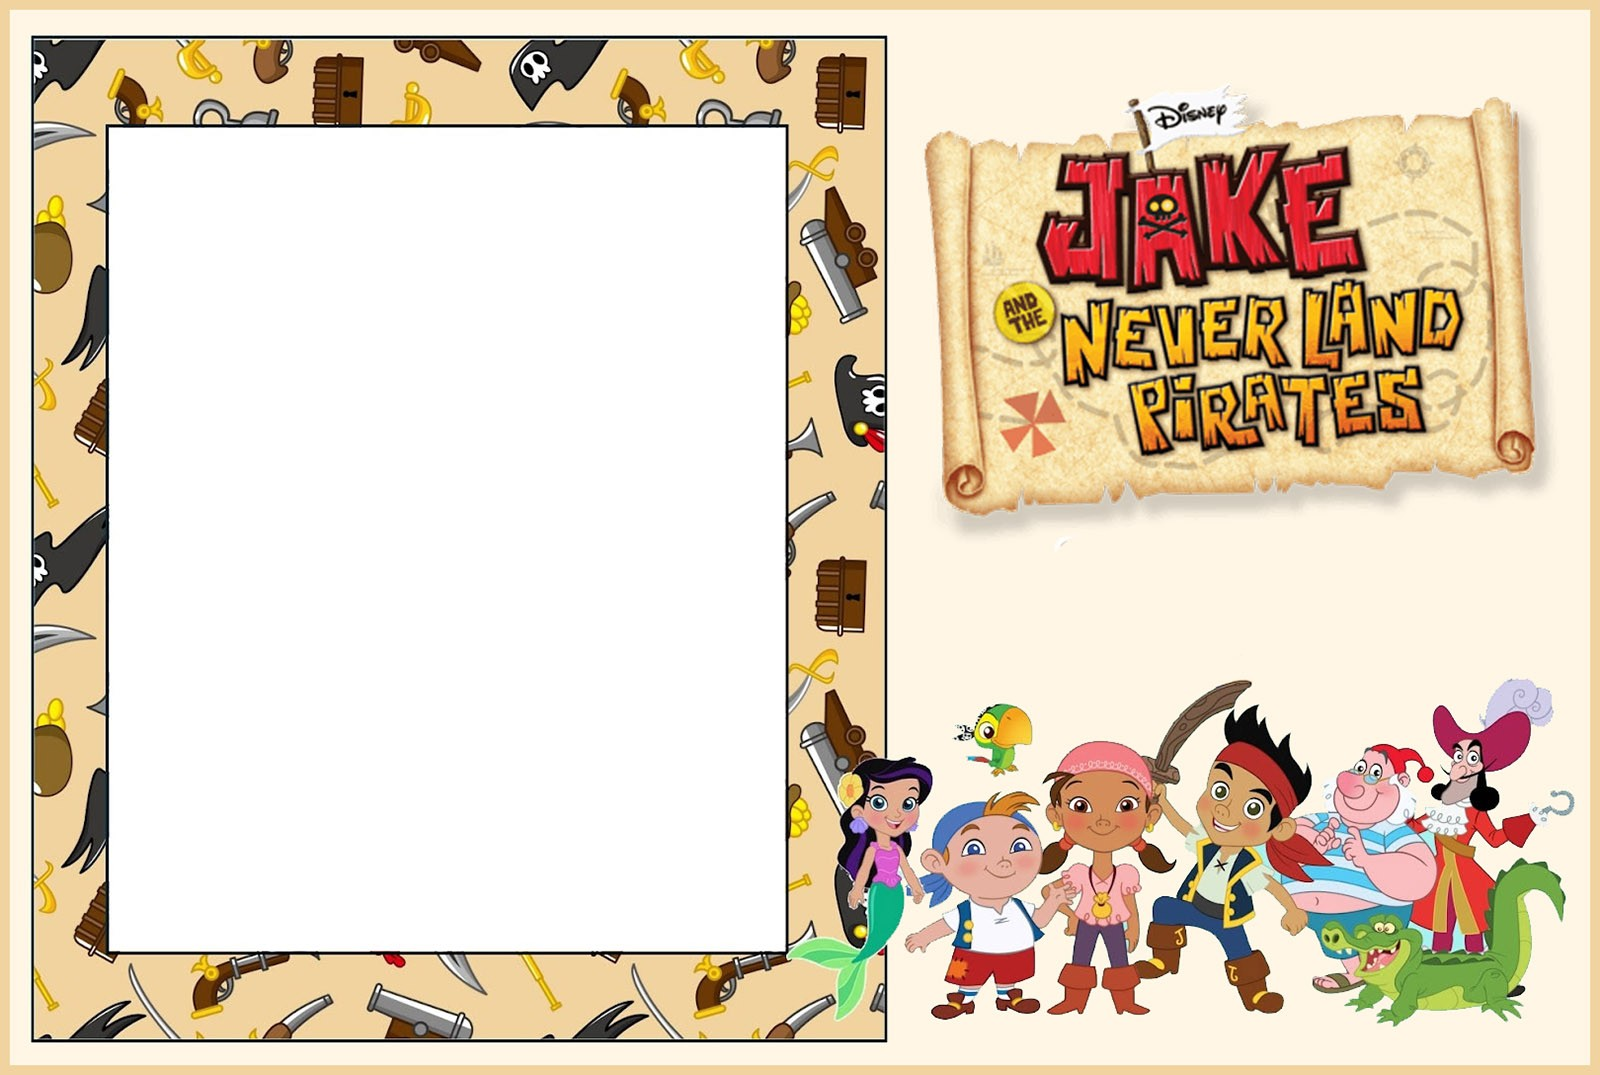 Jake And Neverland Pirates Invitation Template